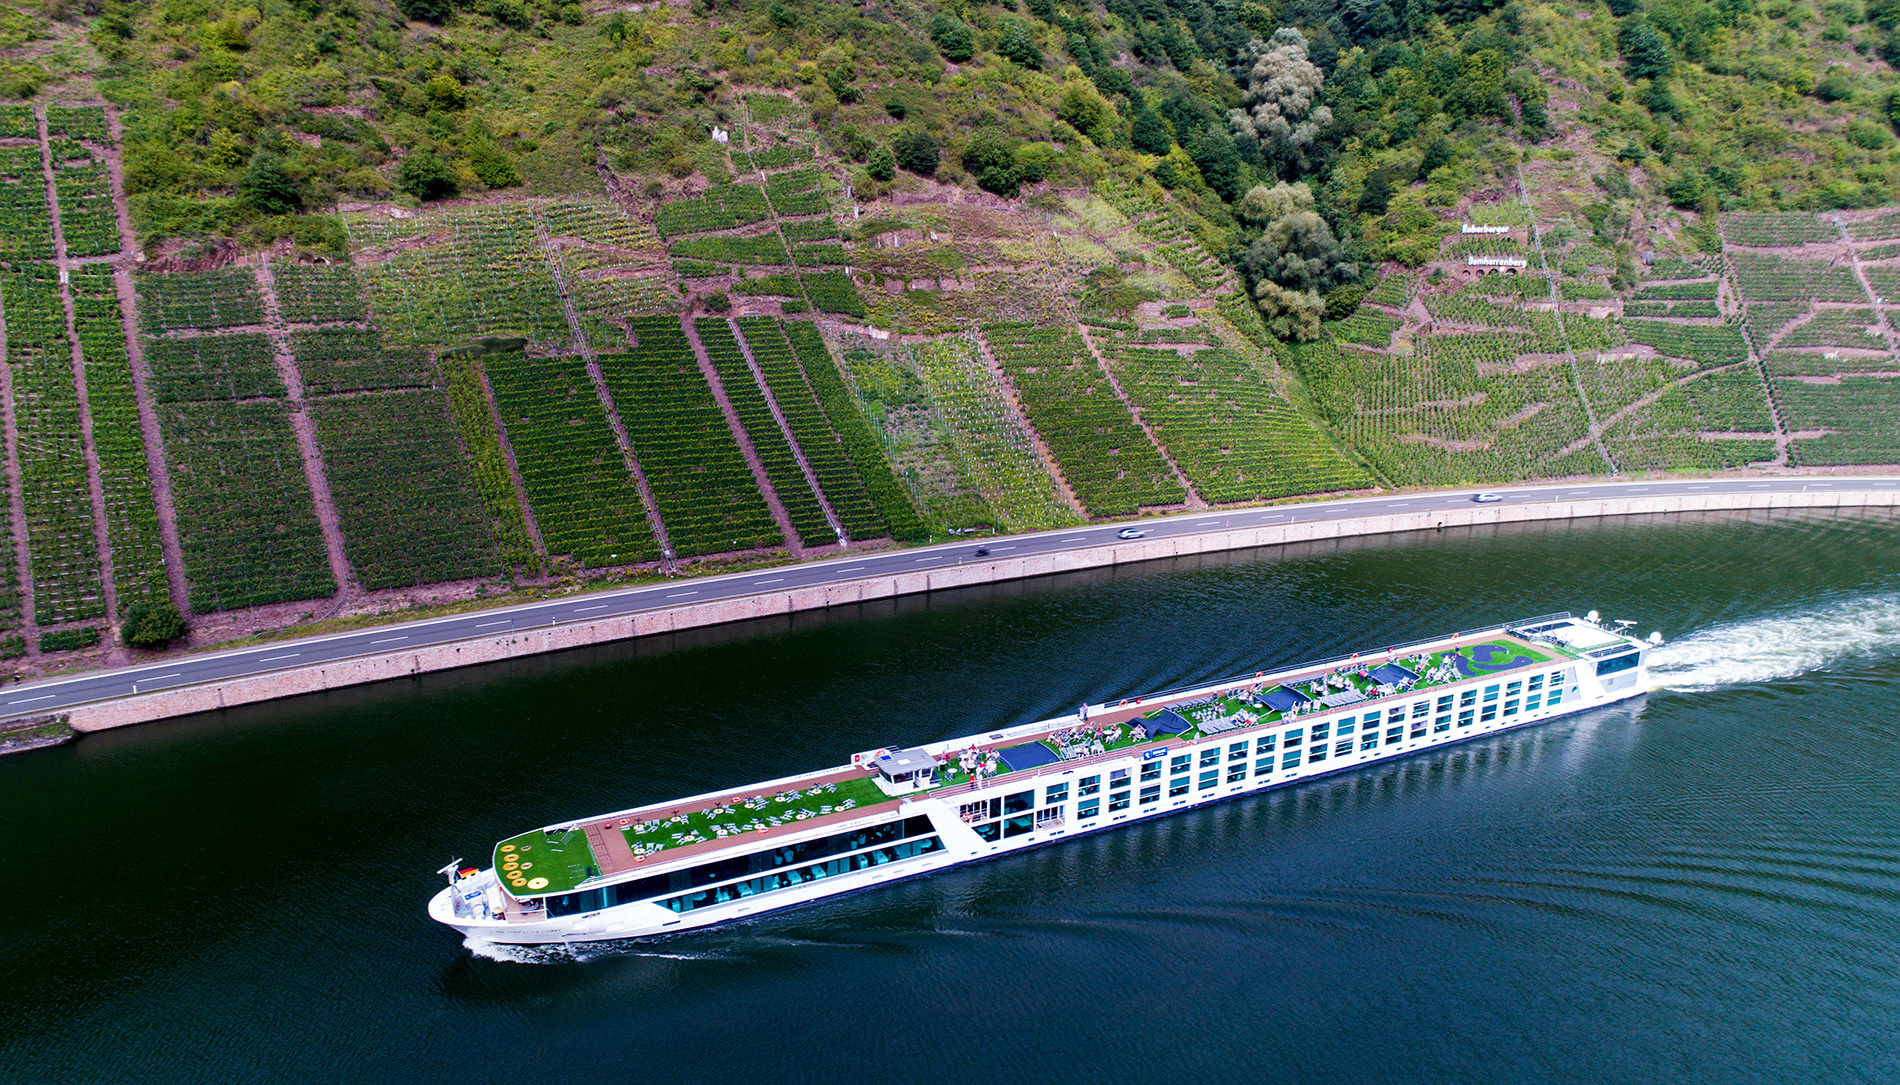 Emerald Waterways Emerald Destiny